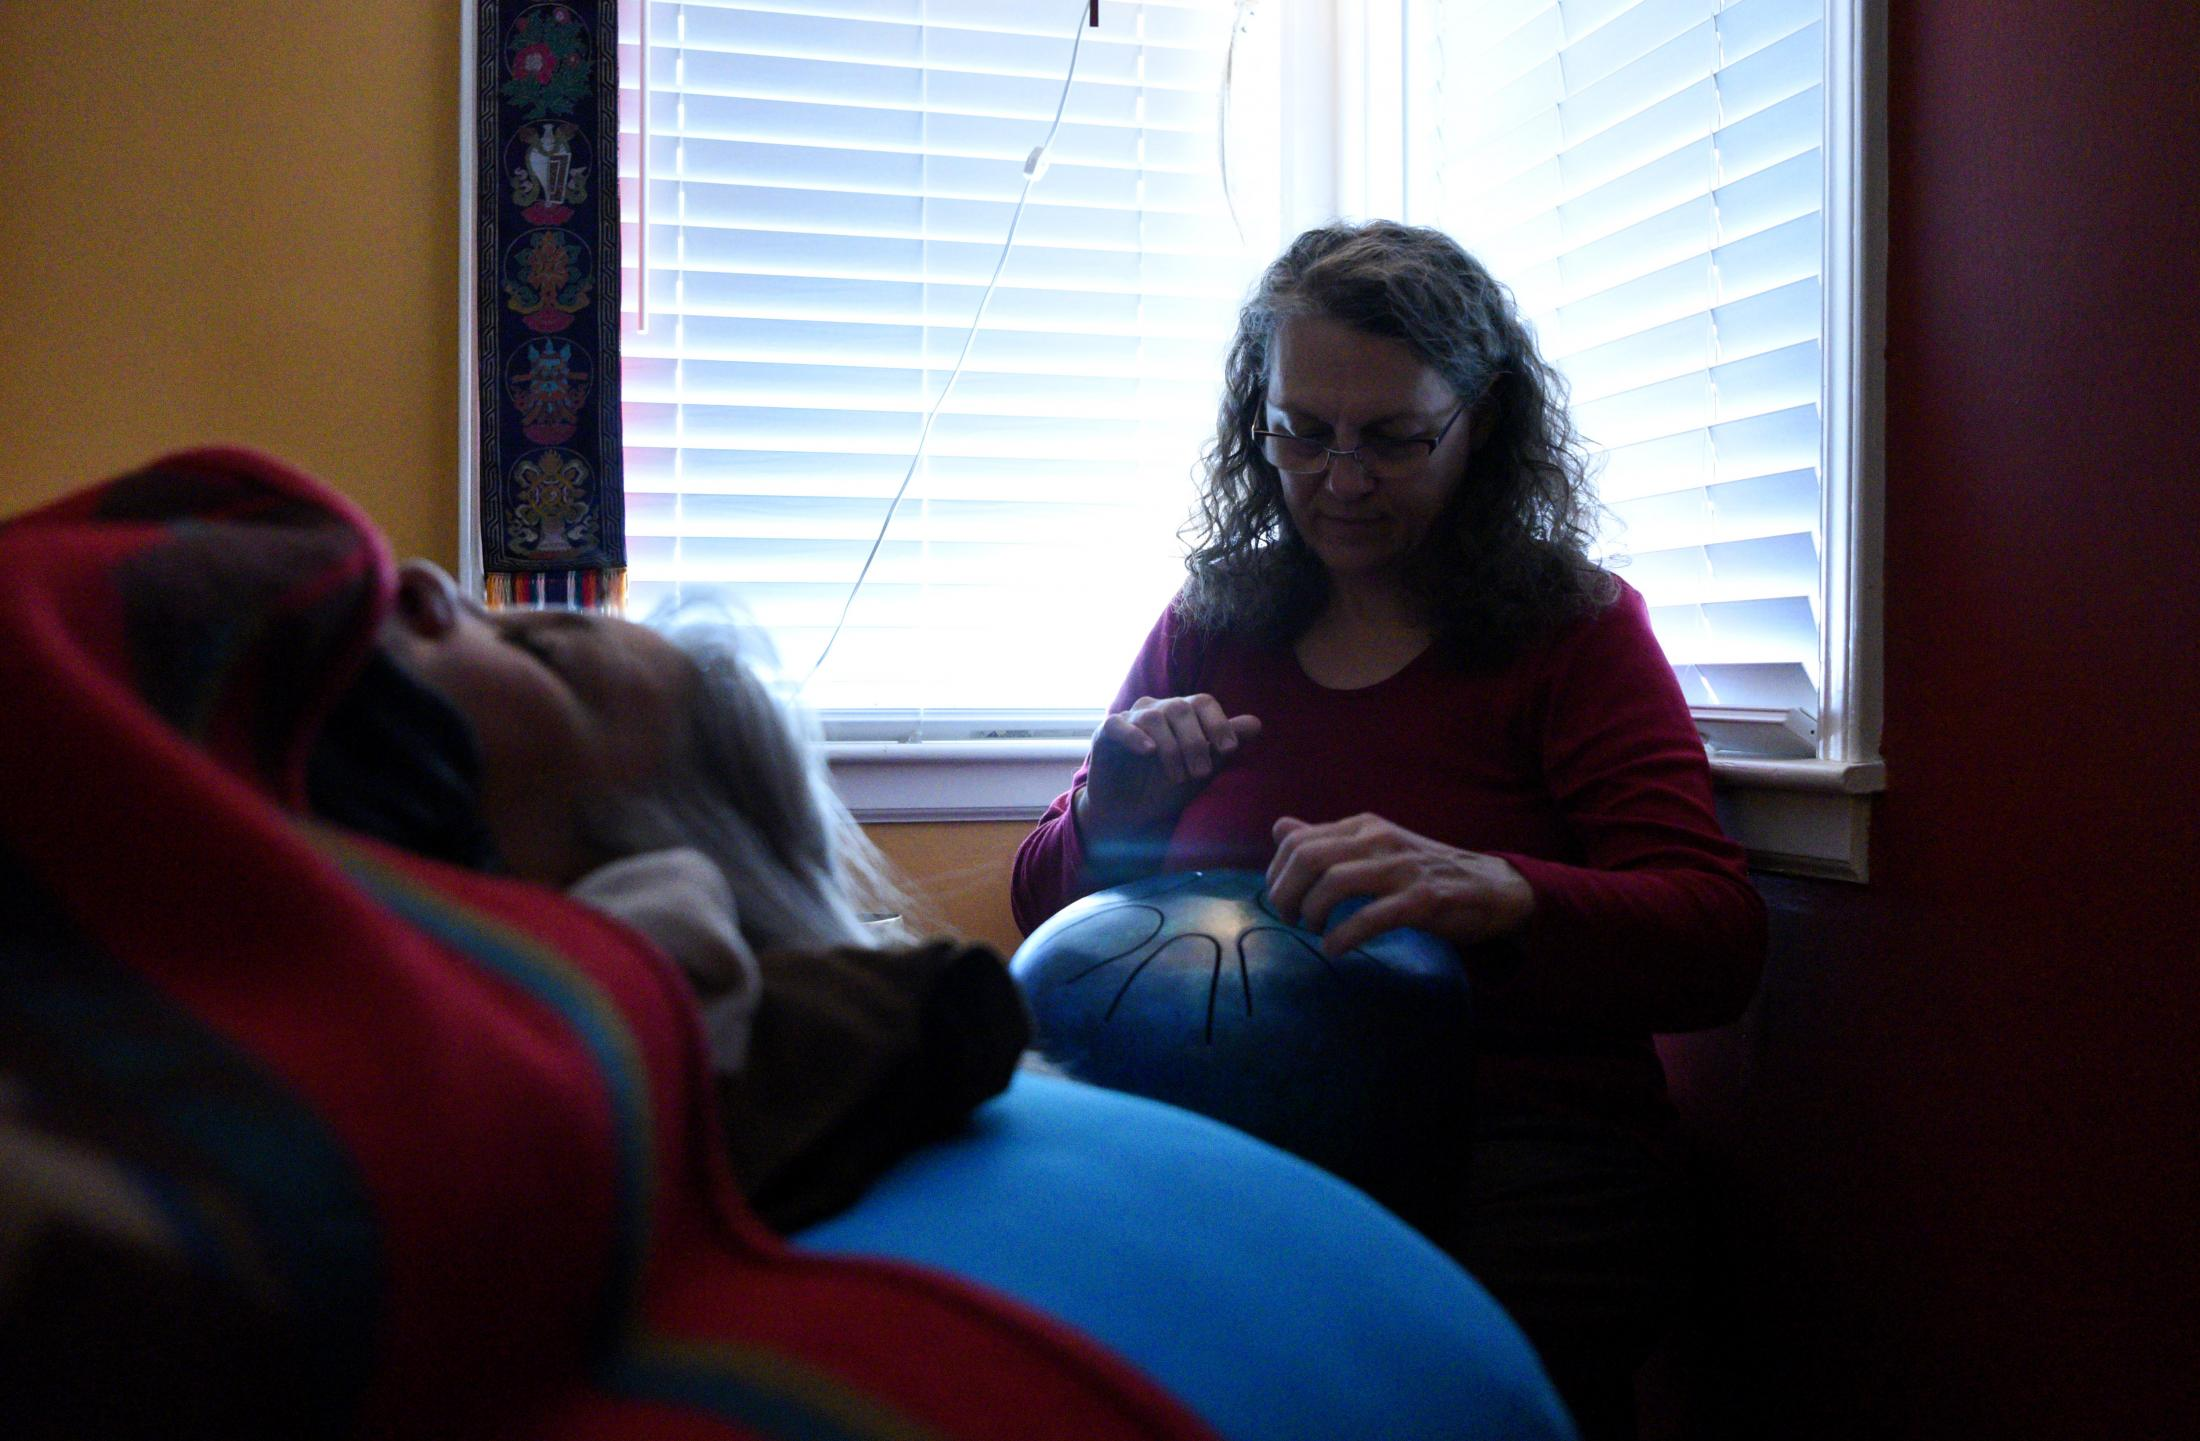 """Margaret Waddell plays the steel tongue drum in a sound healing session for a woman suffering from excessive migraines at Hummingbird Studio in Columbia, Missouri on Nov. 8, 2019. Sound and music have been used since ancient times for healing and transformation. Everything is vibration and you tune your body like you tune an instrument - Sound healing allows your body to heal itself by slowing down your brain waves, which affect every cell in your body, shifting them from diseased to be in ease. """"It is the most beautiful holistic experience,"""" the woman said, """"I always feel so much more at peace after my session."""""""